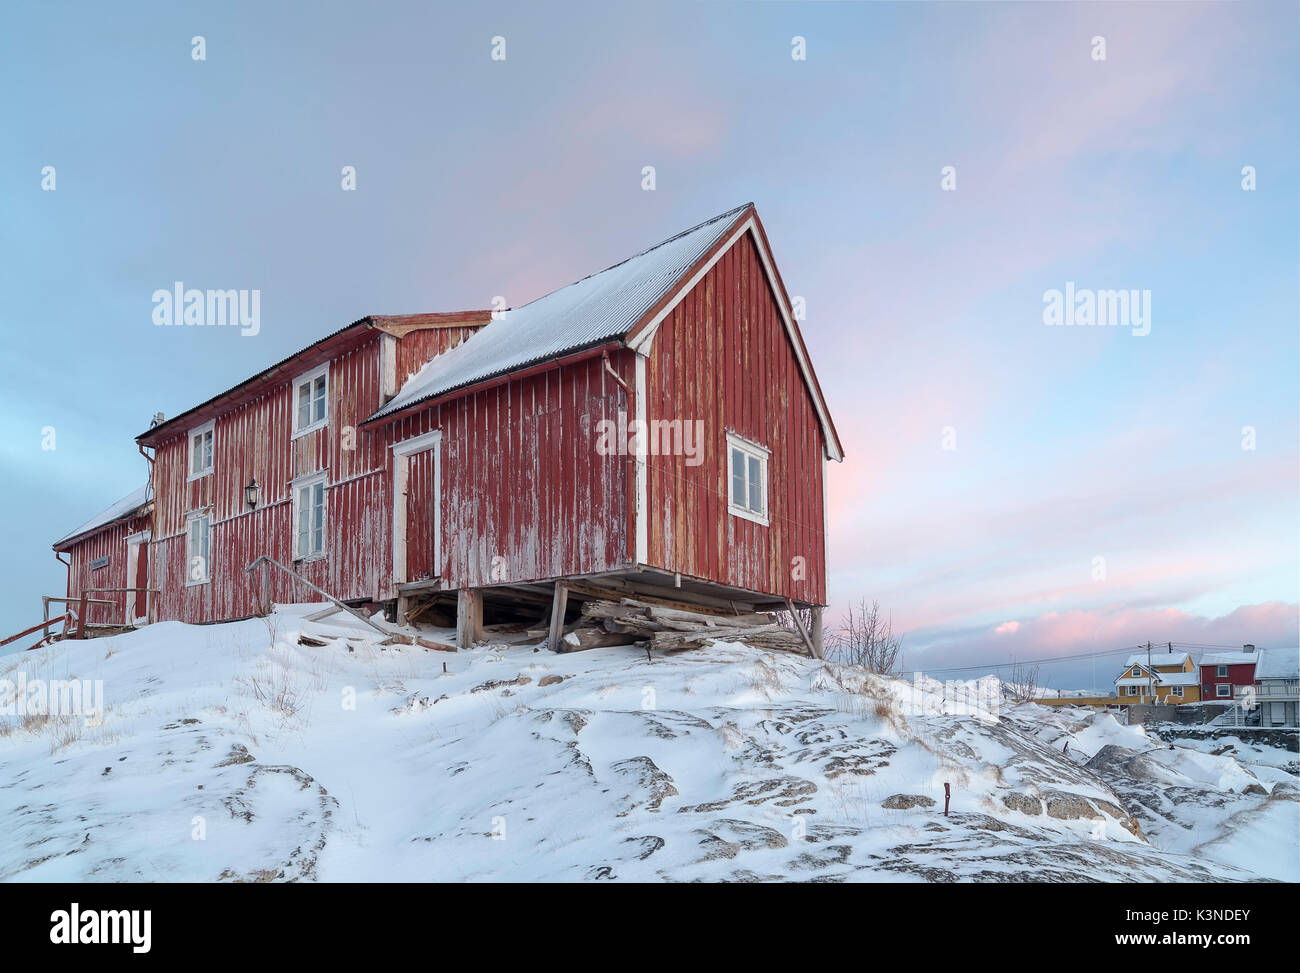 Typical Norwegian Home with colourful sky on the background,  Lofoten Islands, Norway - Stock Image